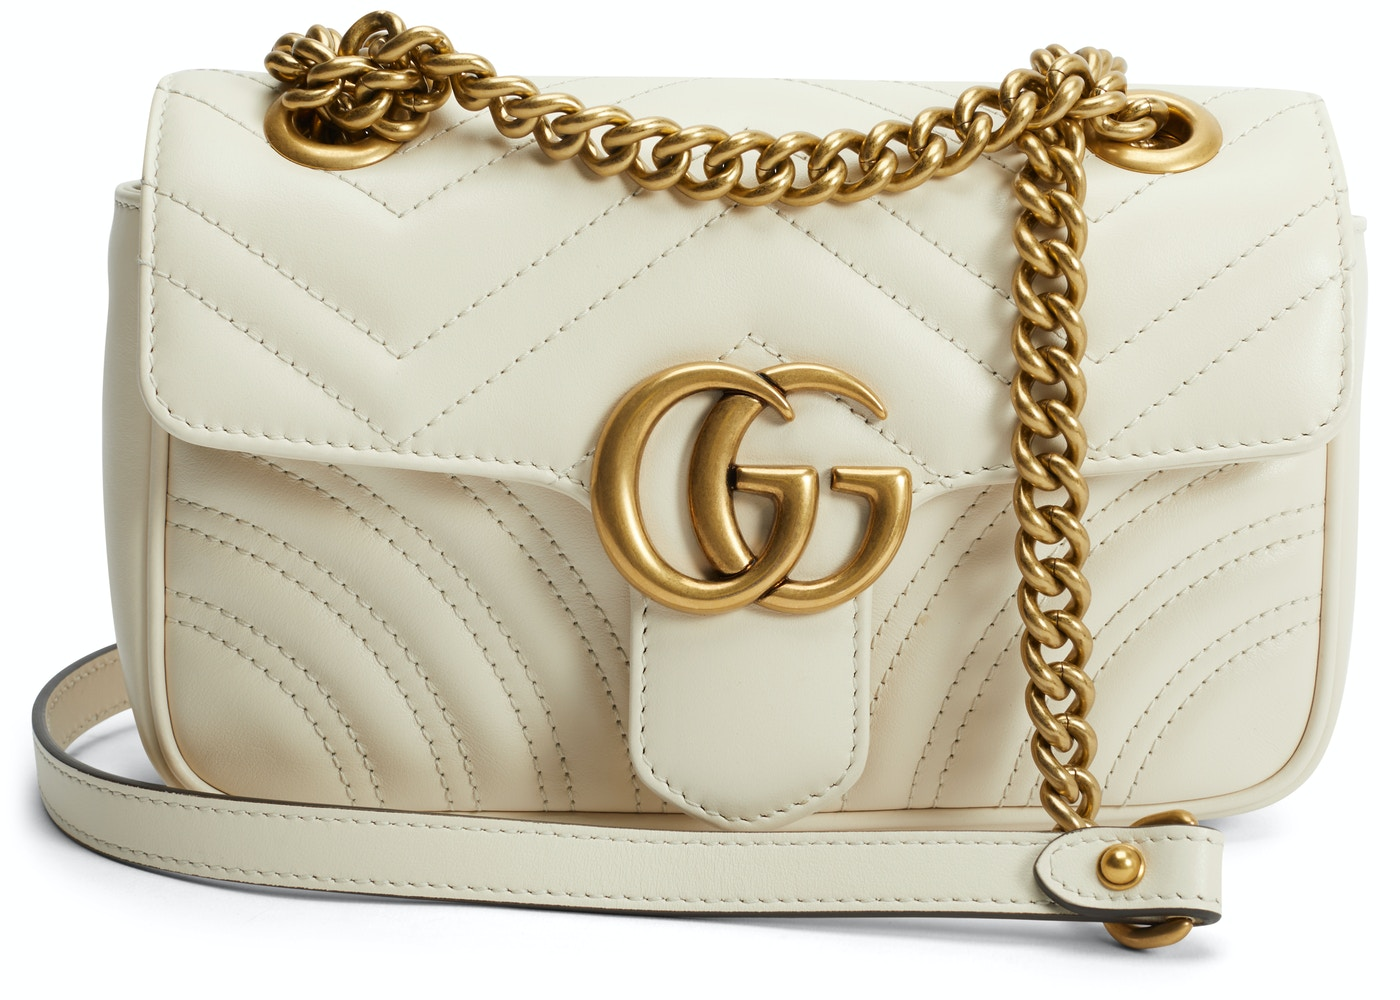 Gucci Gg Marmont Shoulder Bag Matelasse